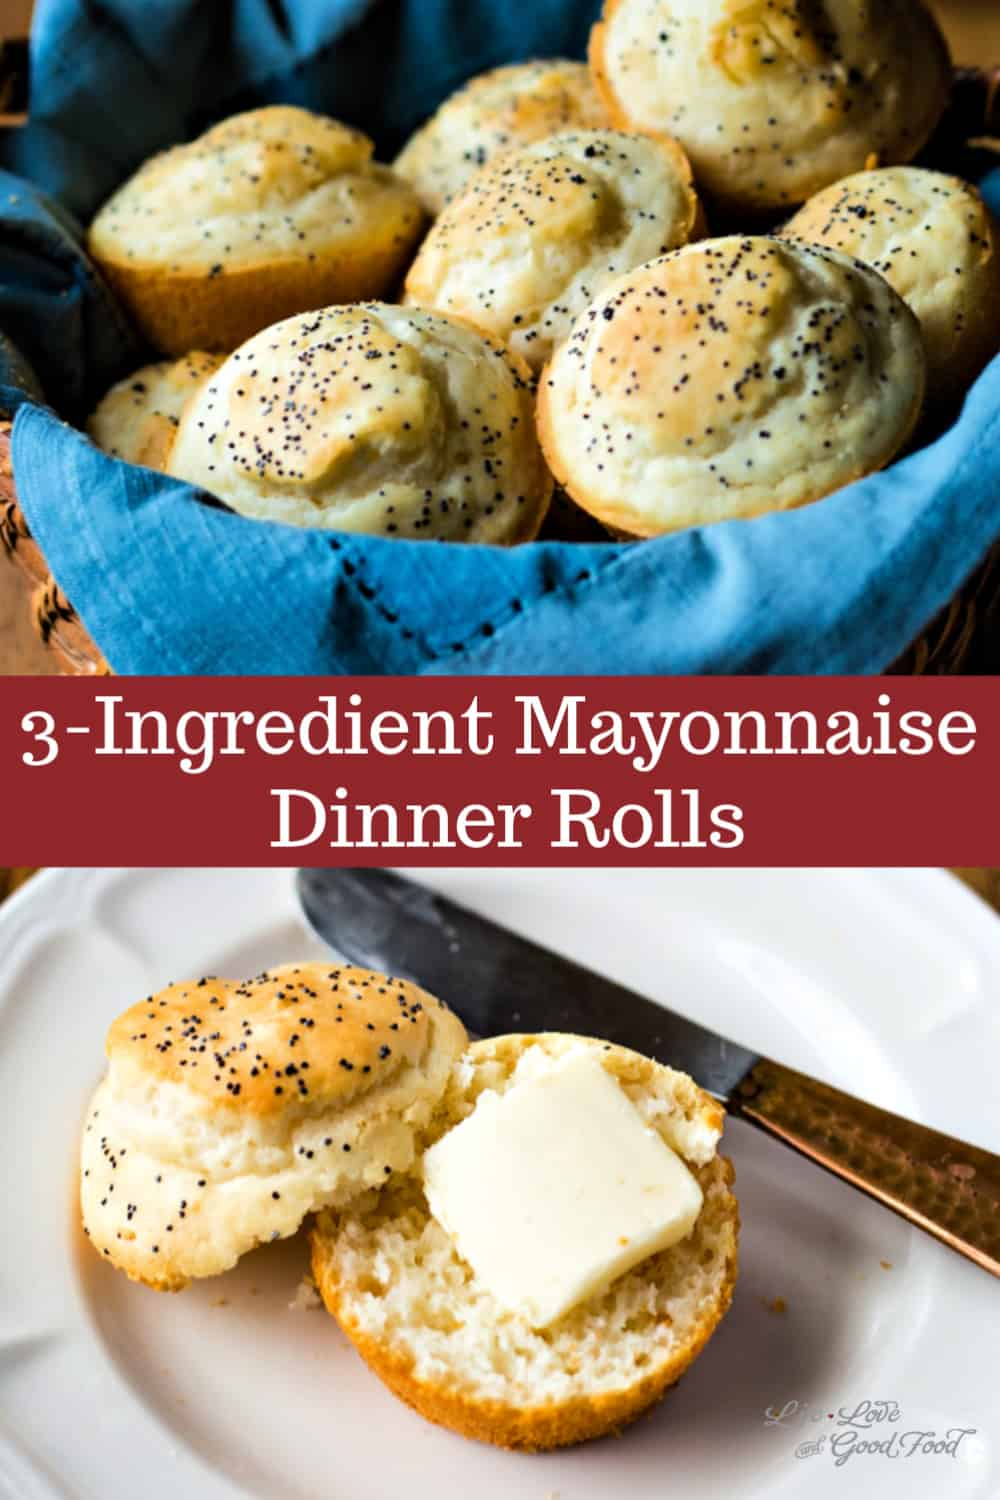 These Quick 3-Ingredient Dinner Rolls made with mayonnaise are so easy and delicious! Ready in about 20-minutes, these quick rolls bake up with a light and airy texture. #bread #quickbread #muffin